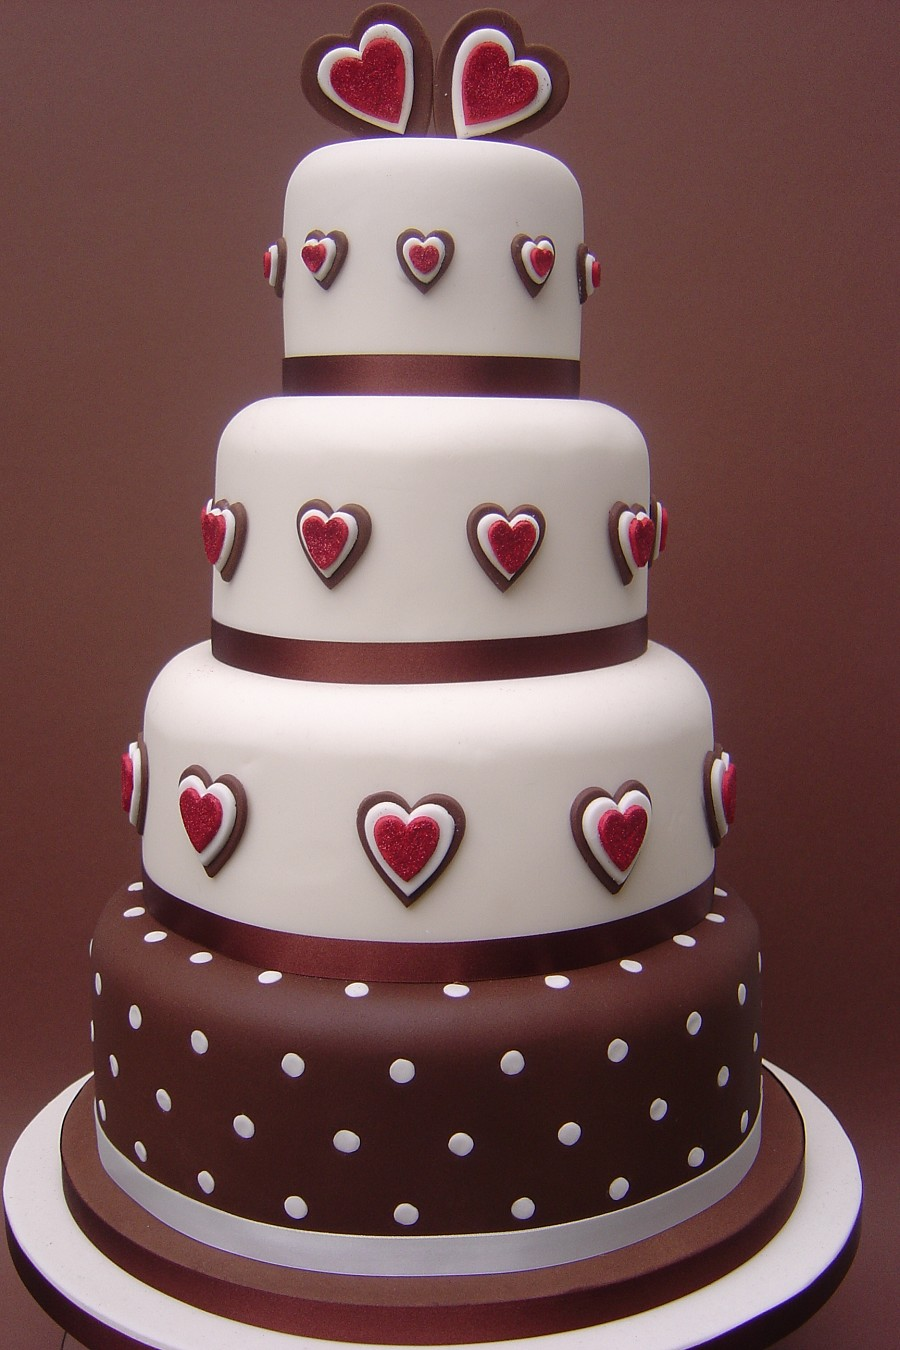 Fabulous Heart Chocolate Wedding Cake 900 x 1350 · 213 kB · jpeg